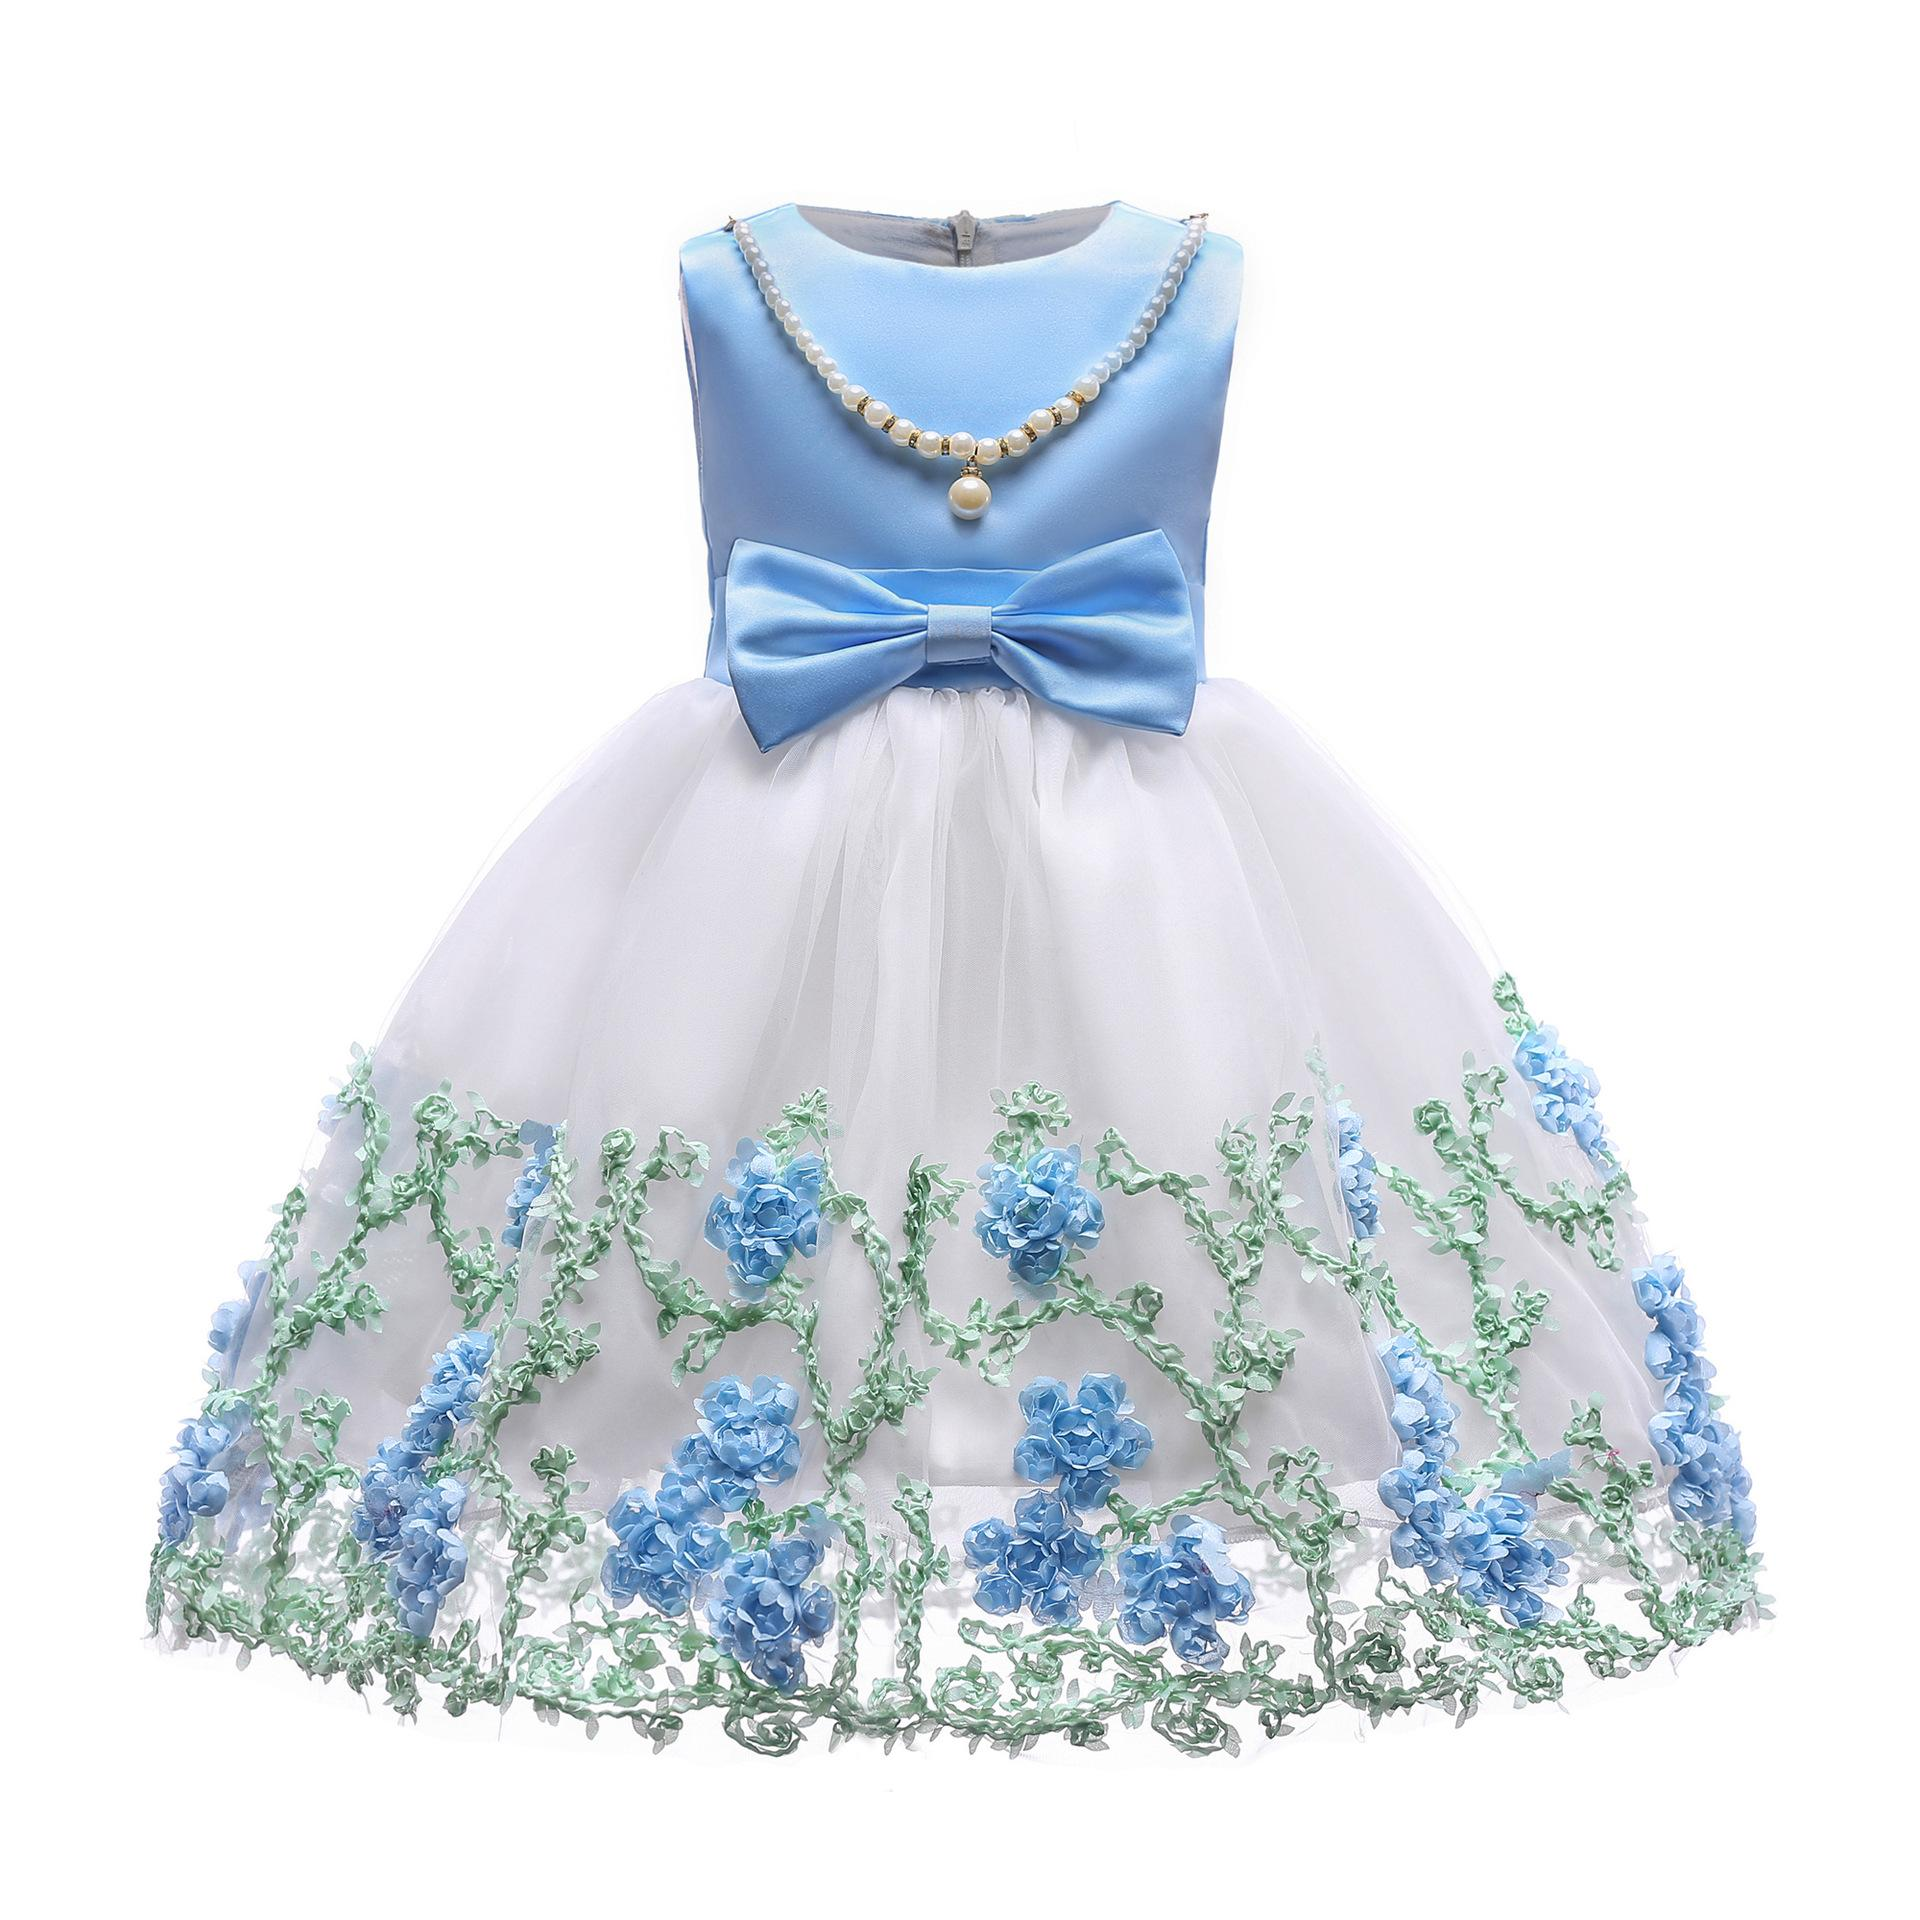 6b5ef49c6 2019 Dresses For Grown Girls Baby GirlBoat Neck Sleeveless Fashion Mesh  Cotton Kids Clothes Ball Gown Children Newborn Baby Girl Dress From  Wlb_147258, ...